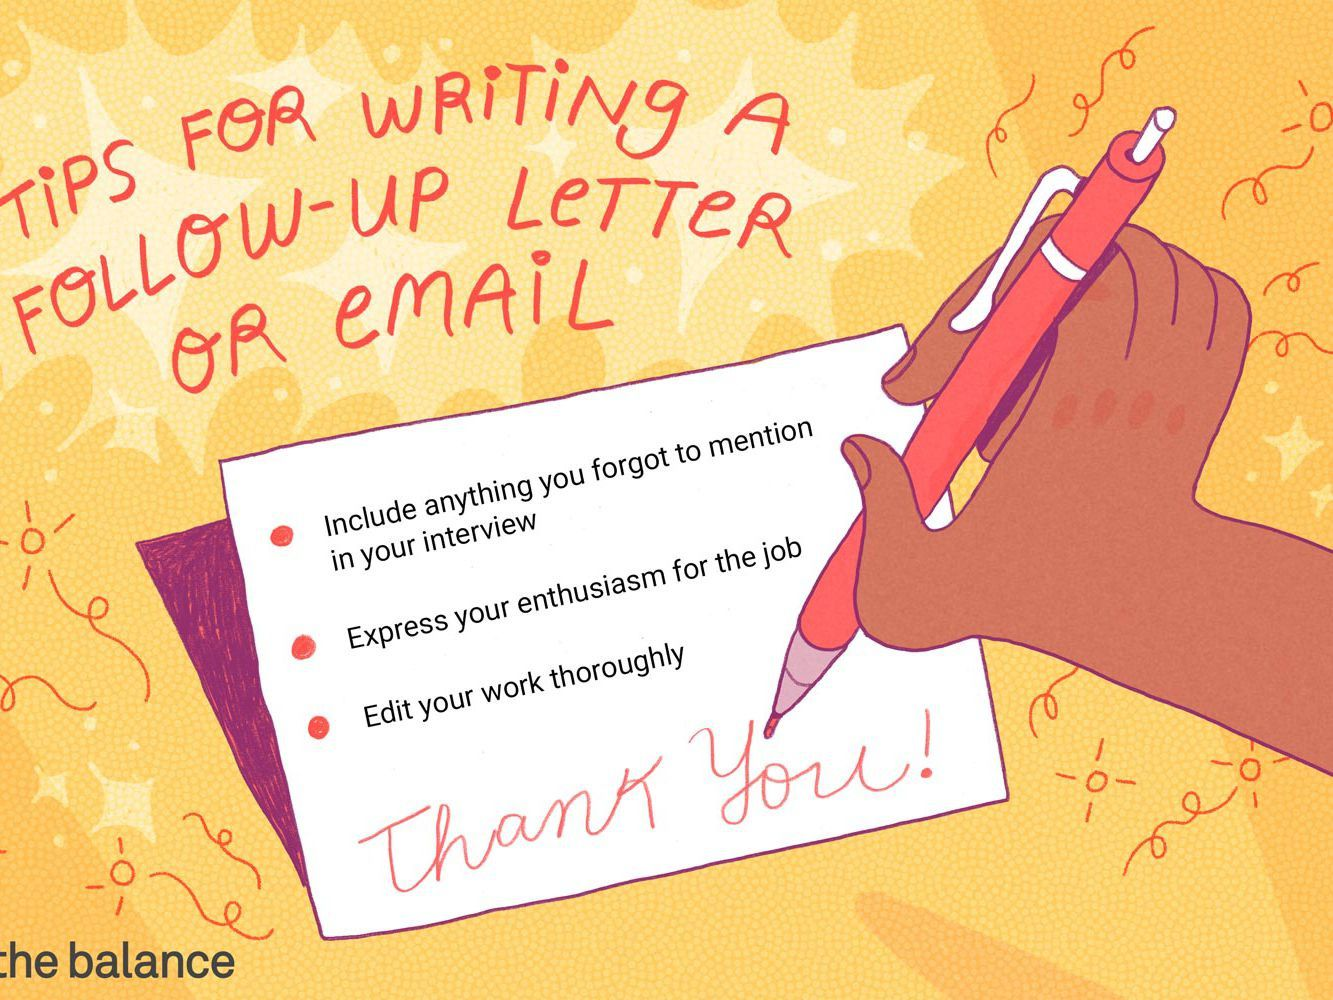 006 Fantastic Follow Up Email Sample After No Response Template High Resolution Full